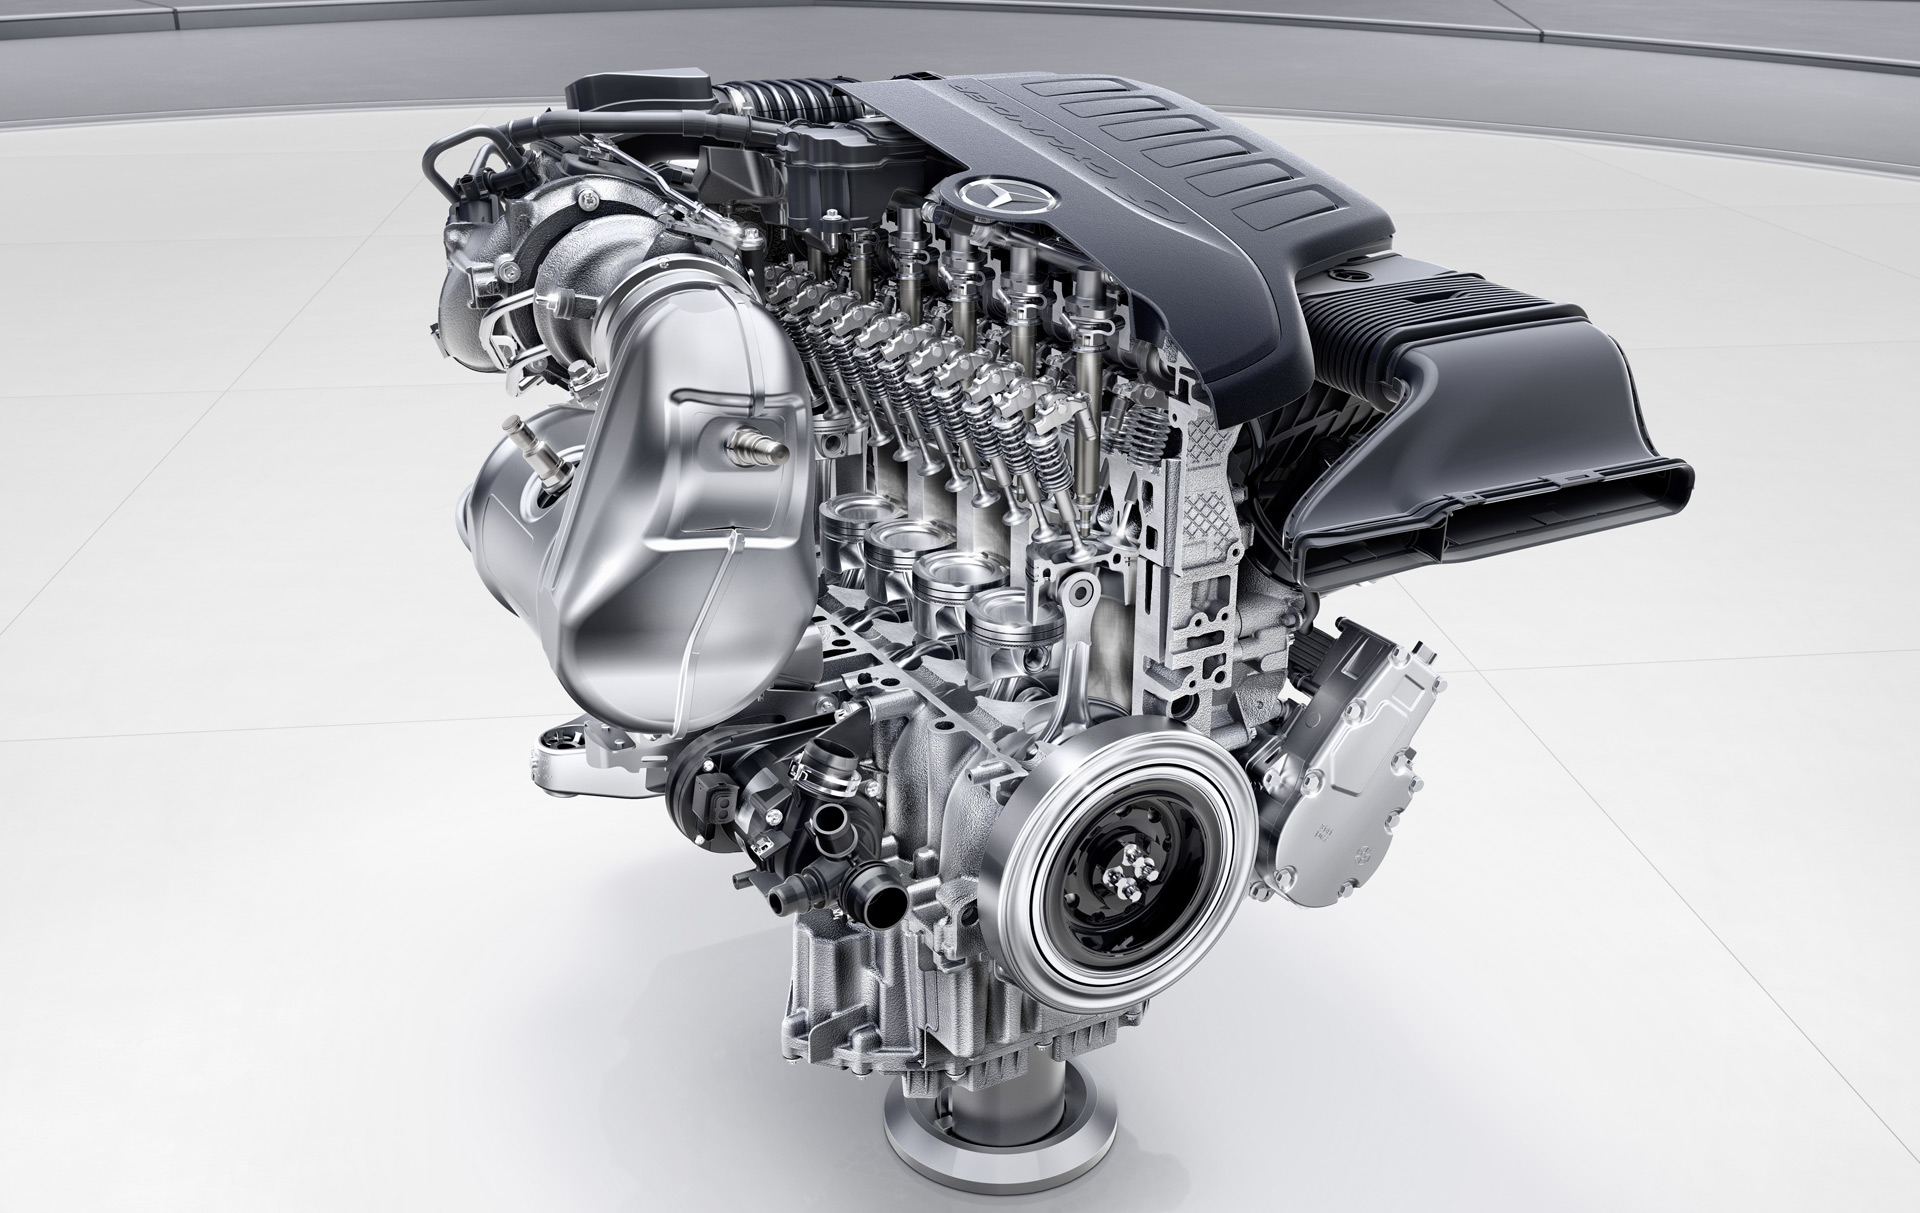 Mercedes-Benz phasing out V-6 engines in favor of inline-6s